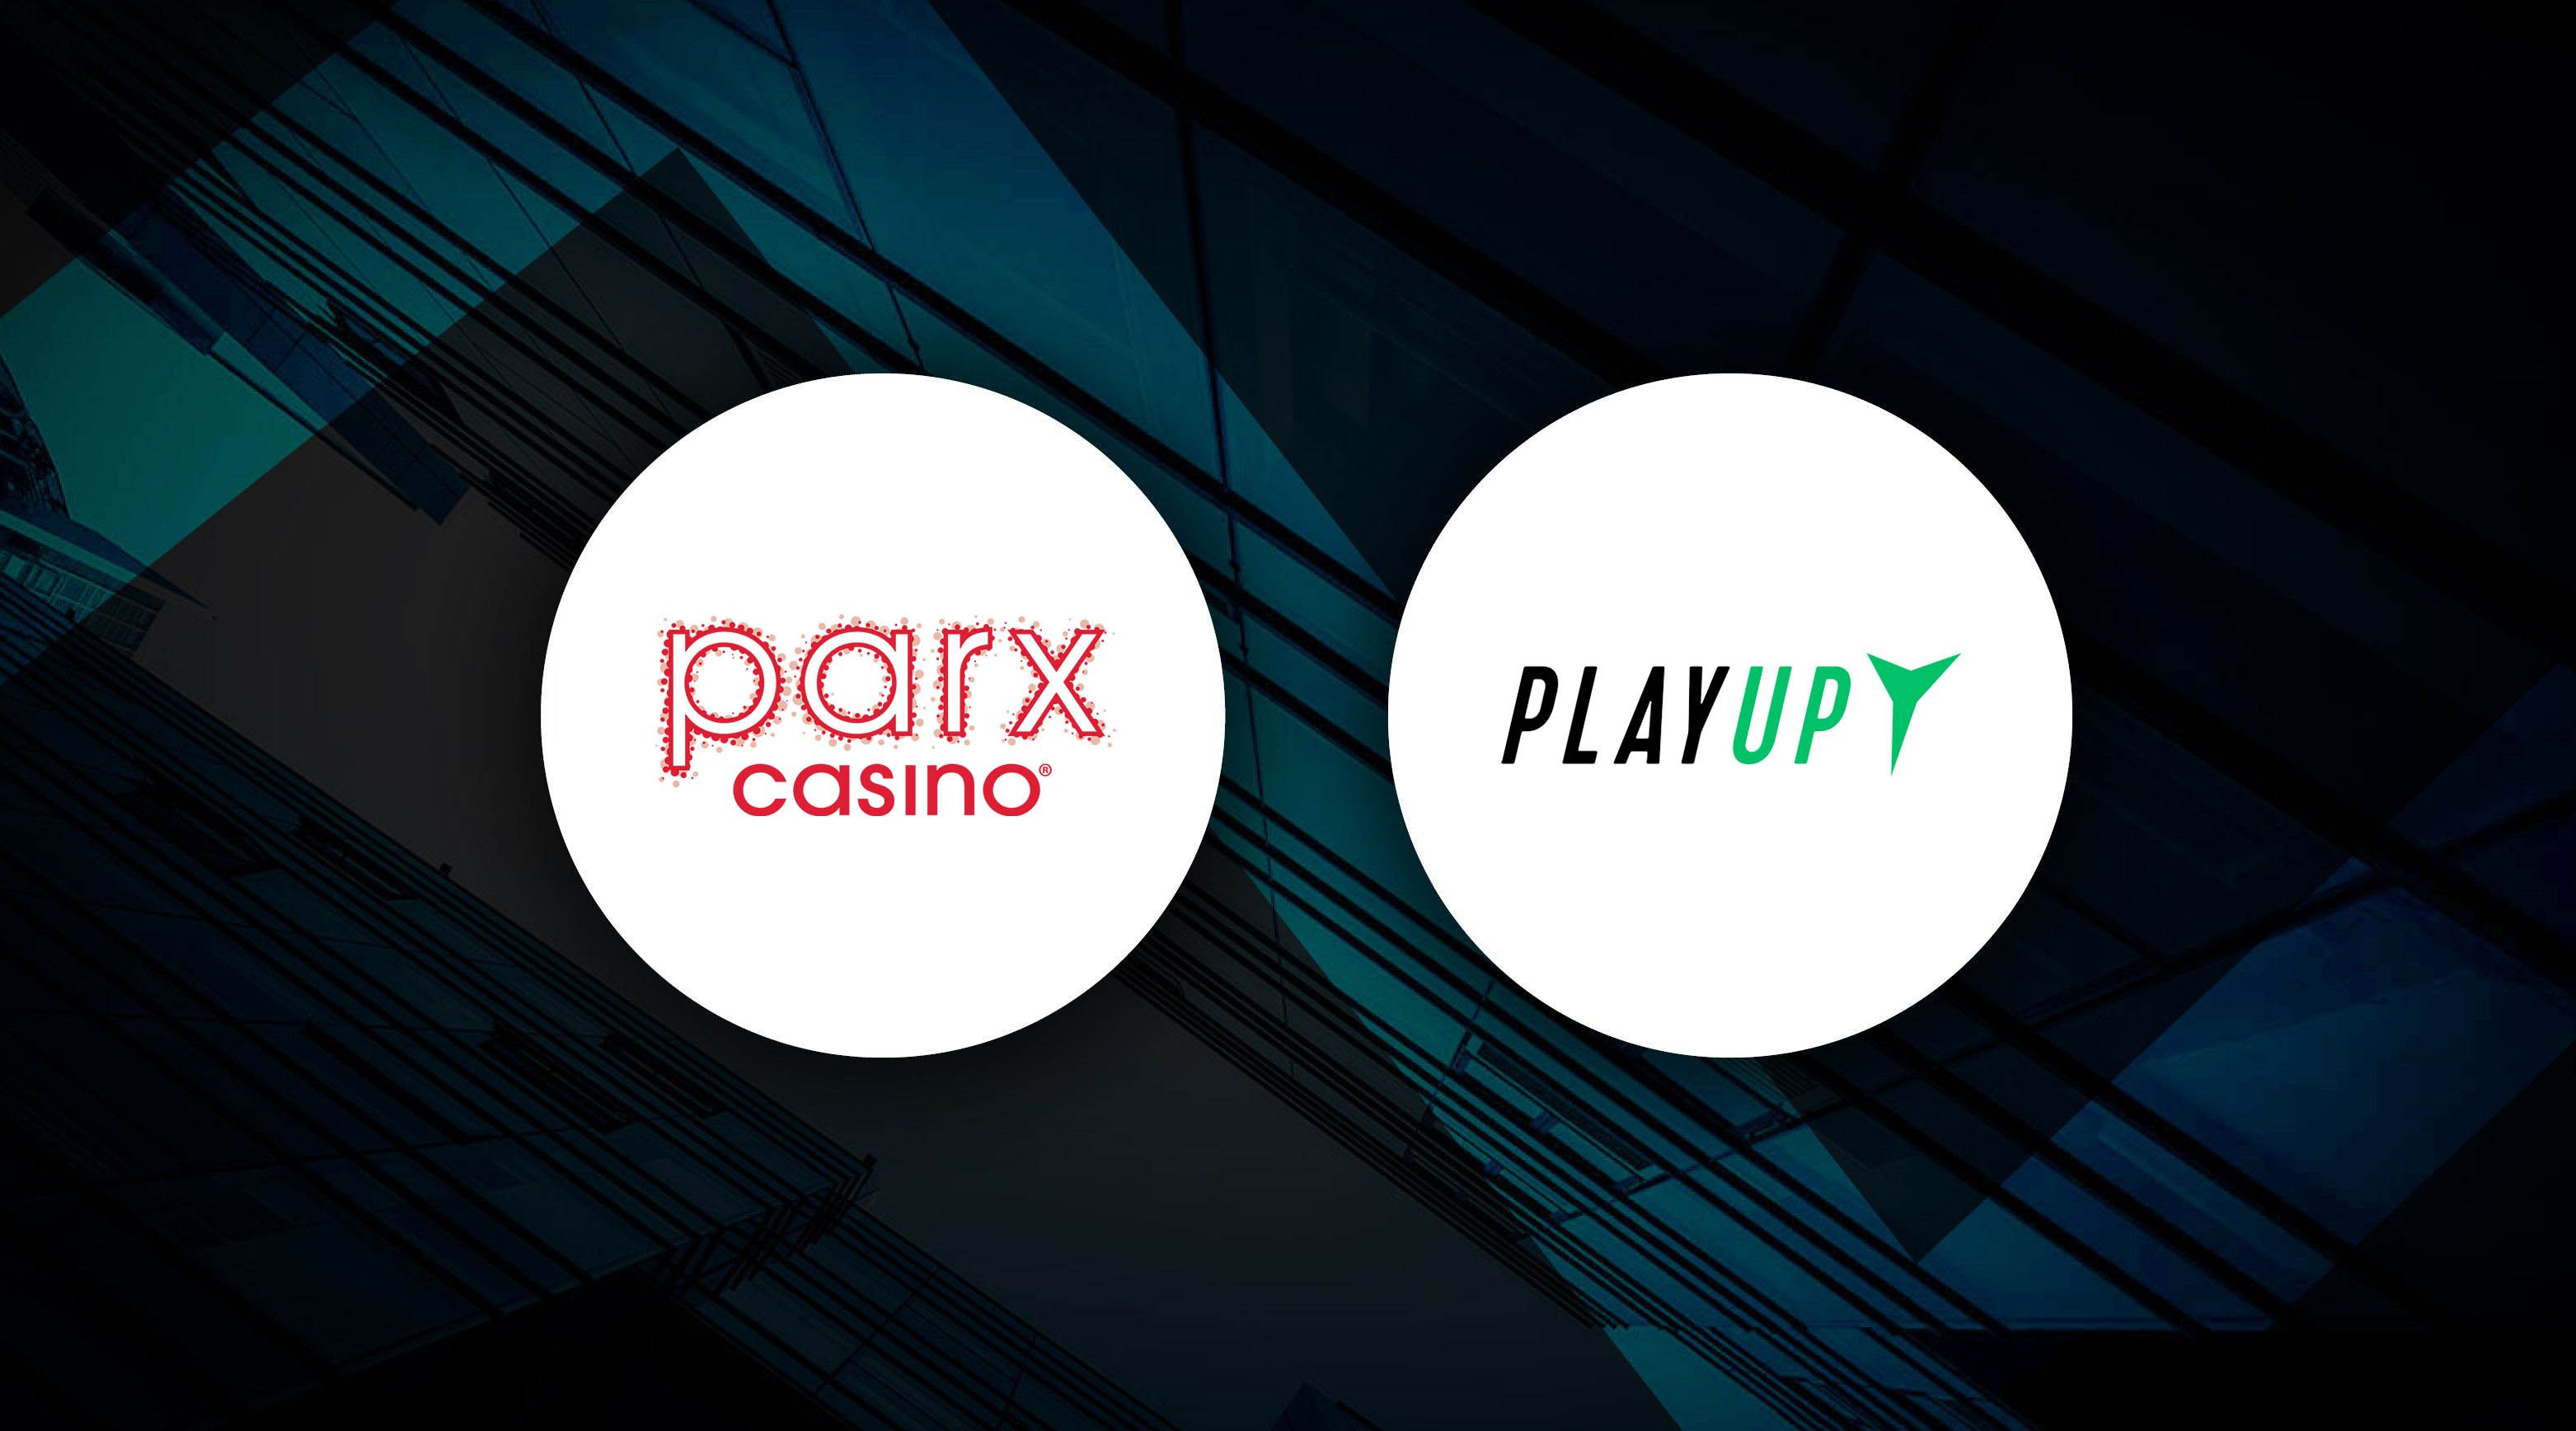 Partis Facilitates Multi Year Deal Between Parx And Playup